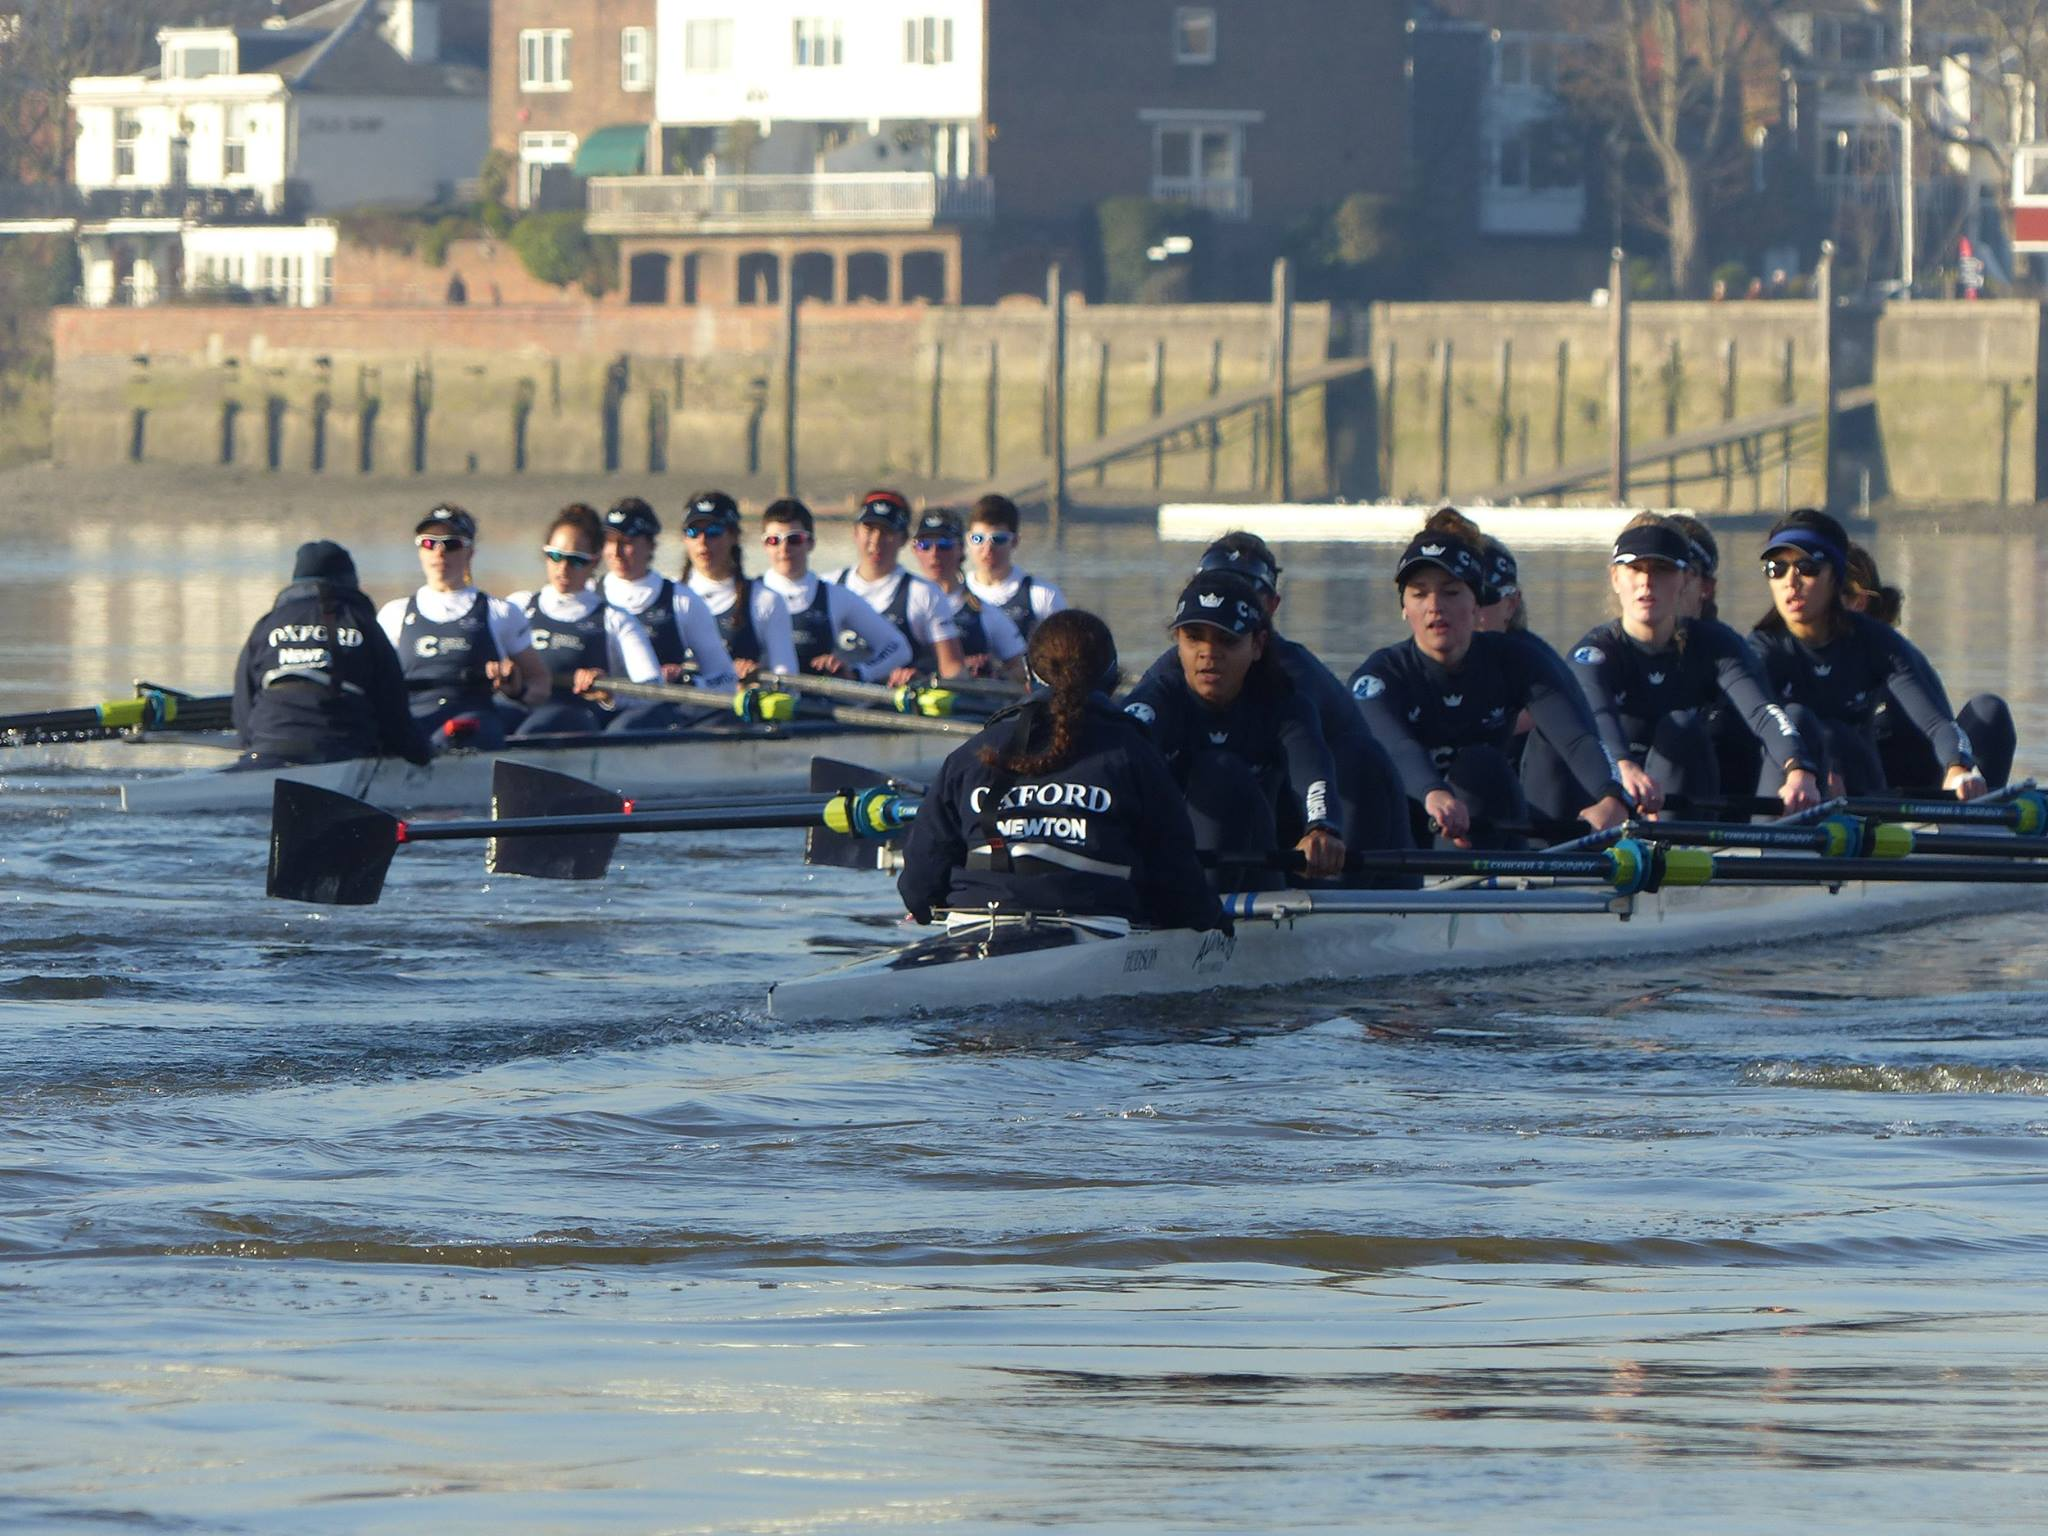 Crew 8s on the Thames